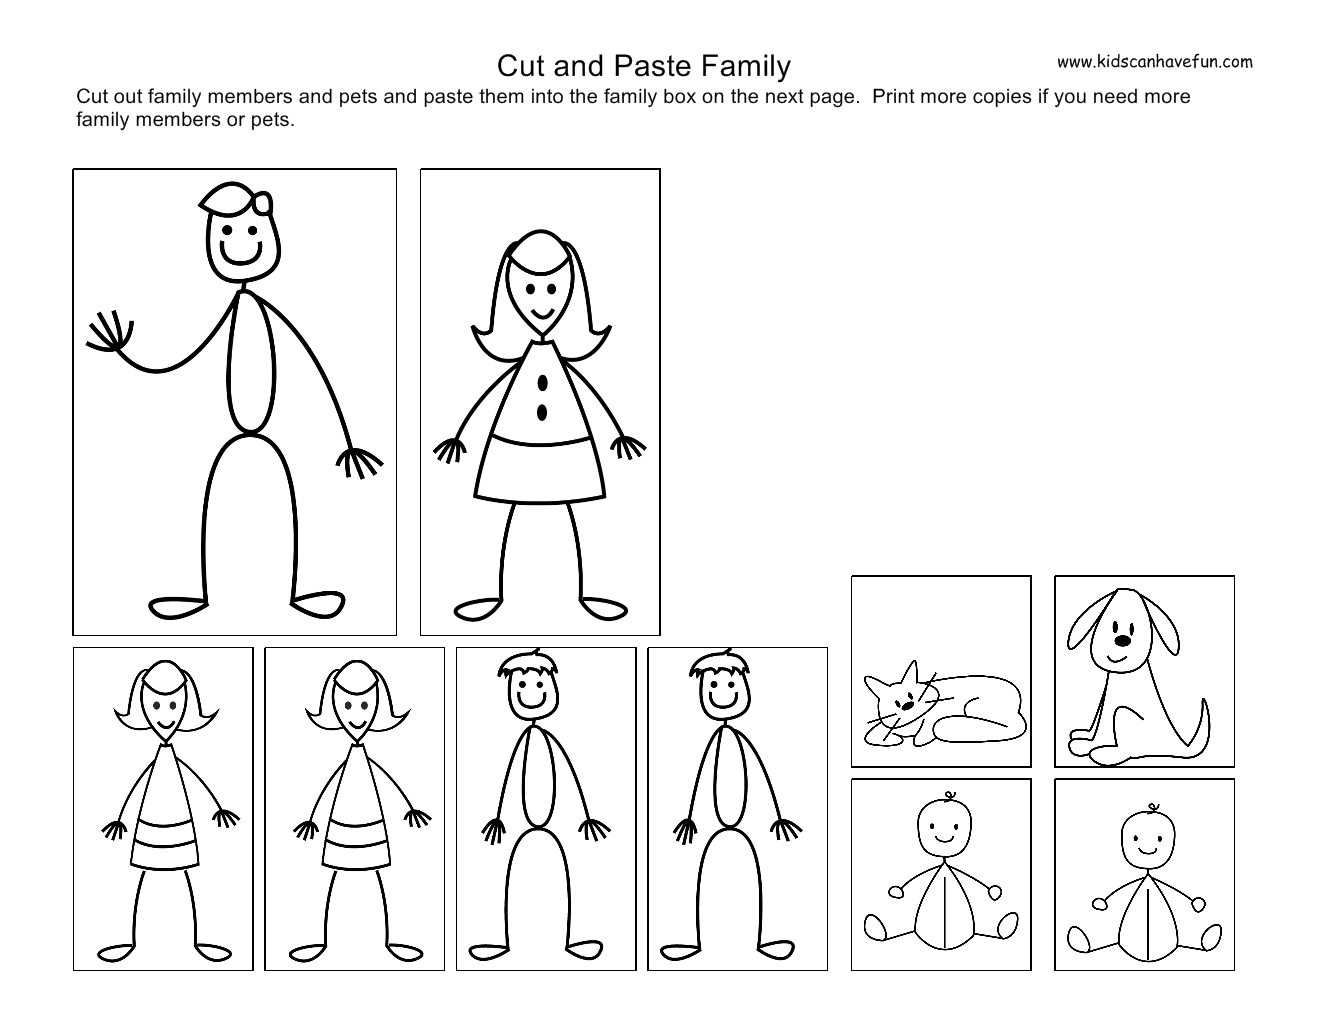 worksheet Preschool Cutting Worksheets cut and paste kids family worksheets theme activities worksheets